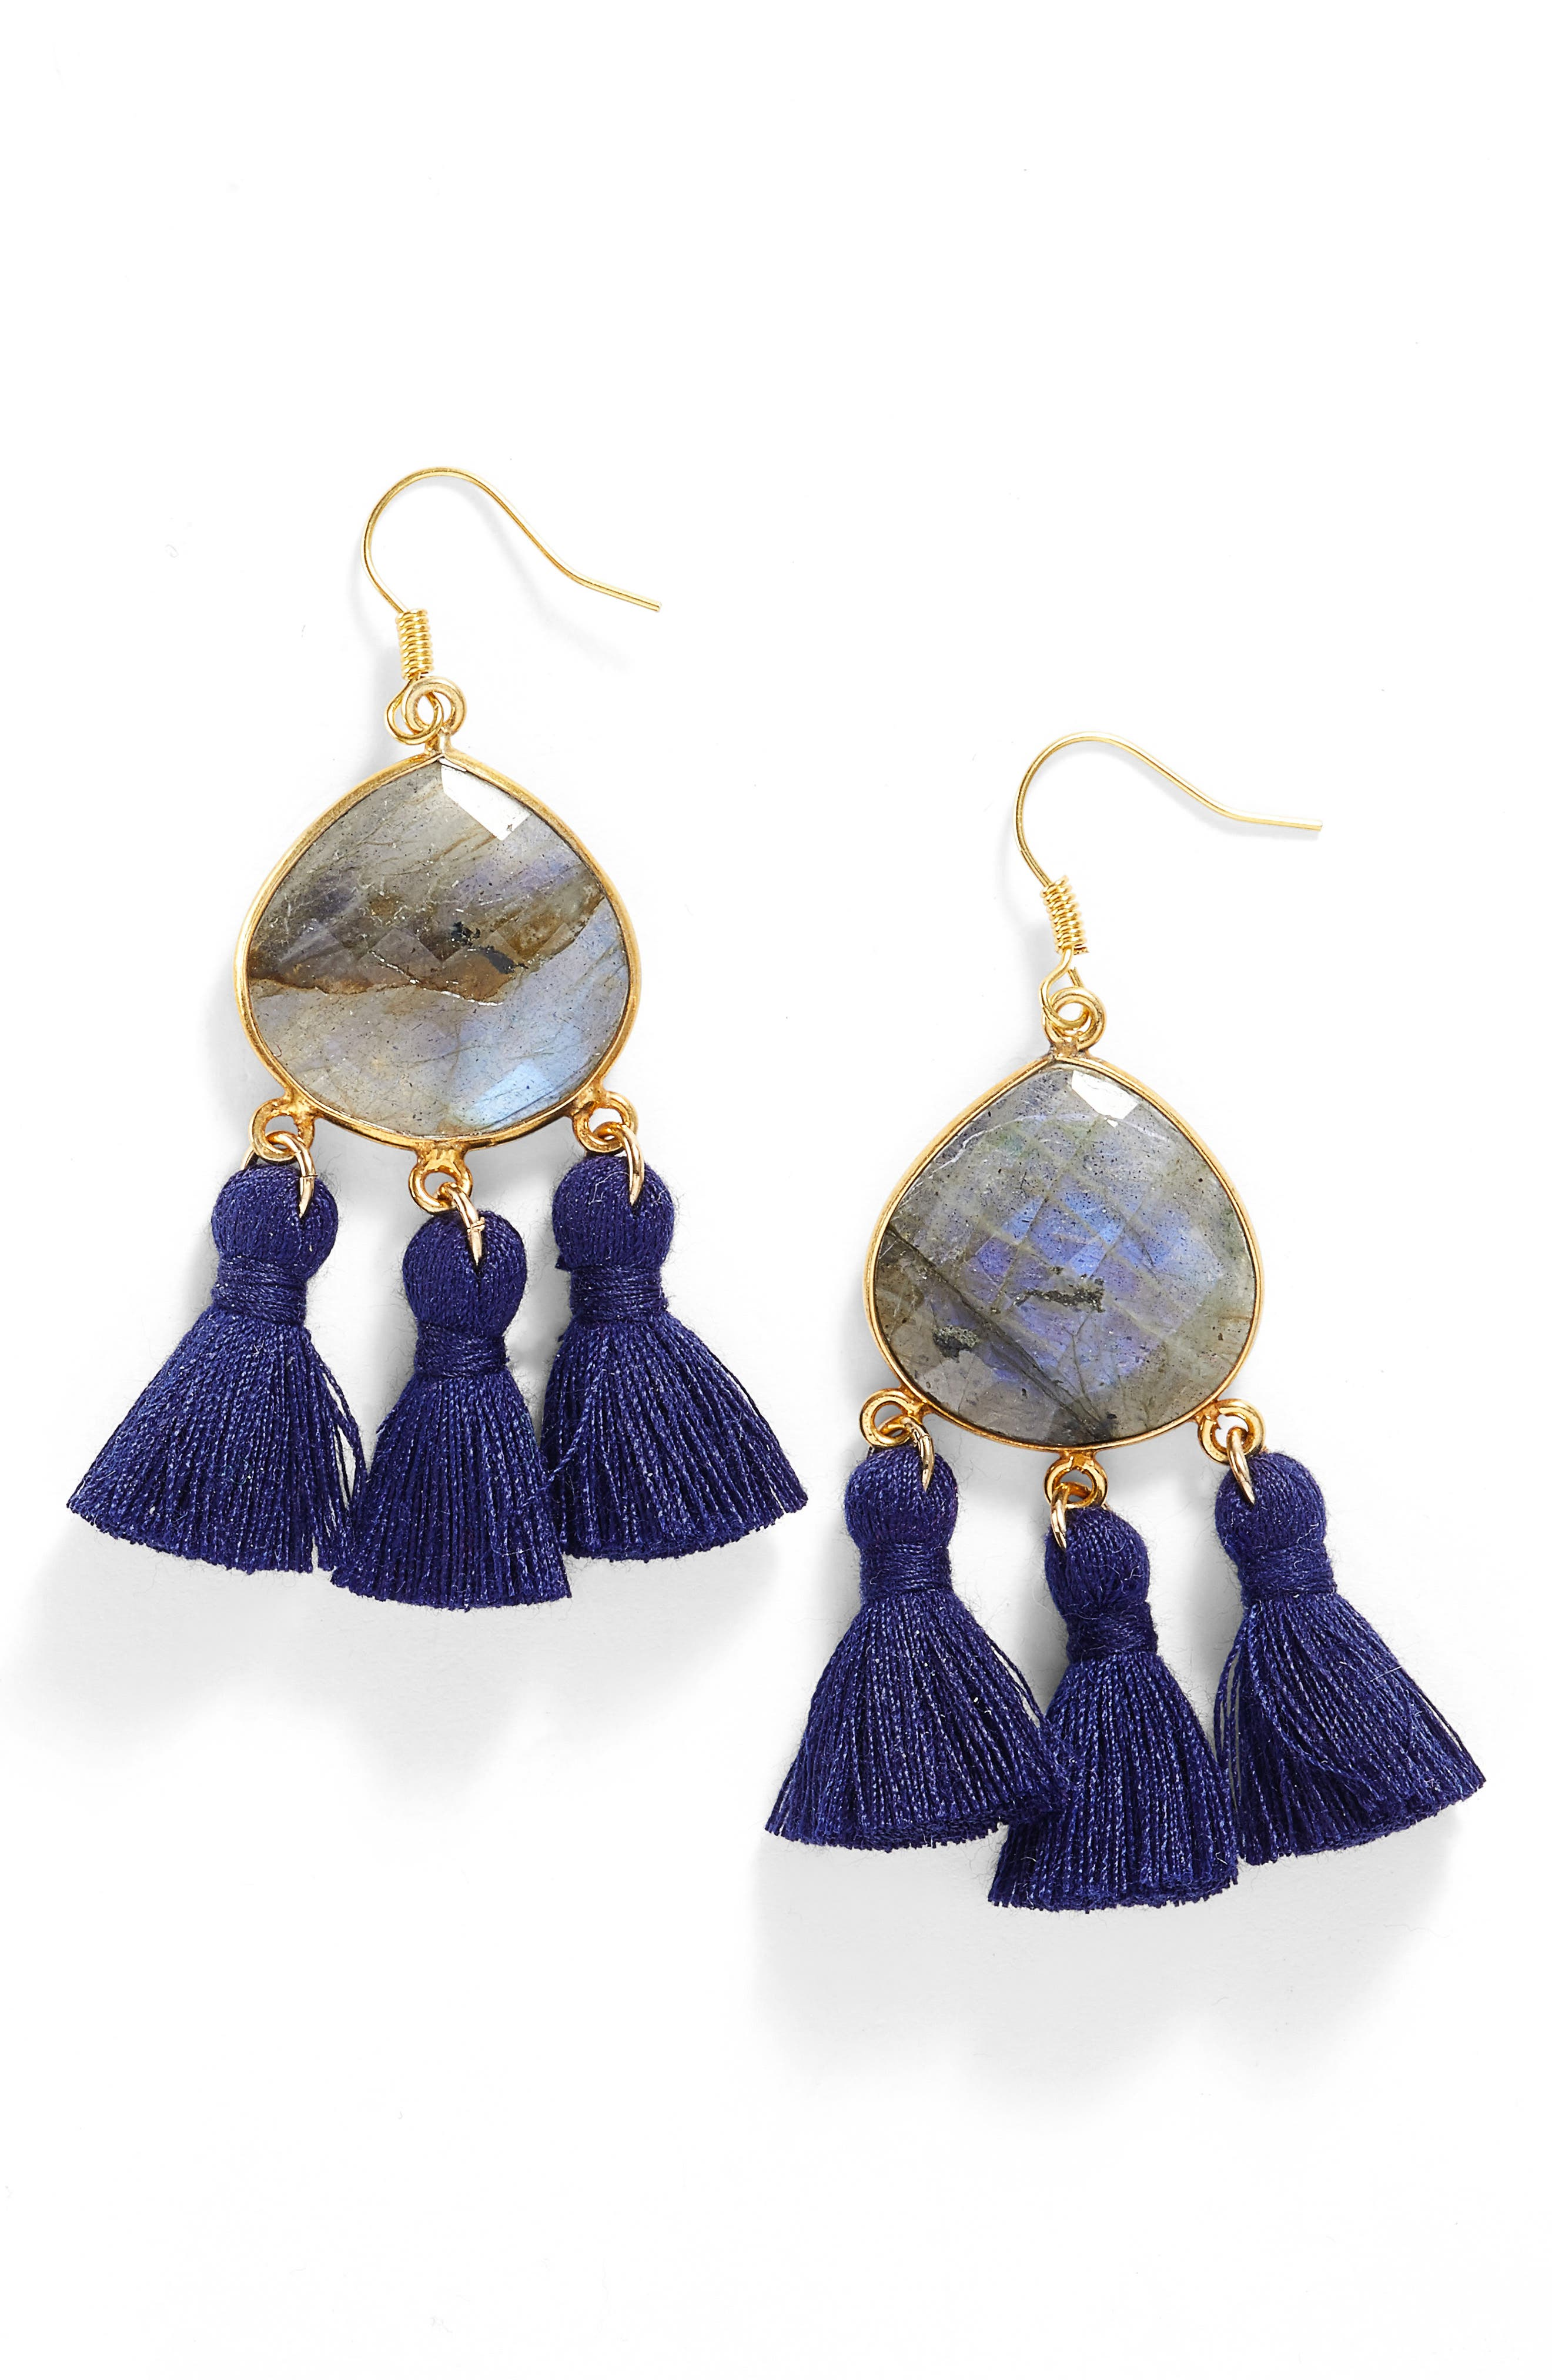 Alternate Image 1 Selected - Love's Affect Lacey Semiprecious Stone Tassel Earrings